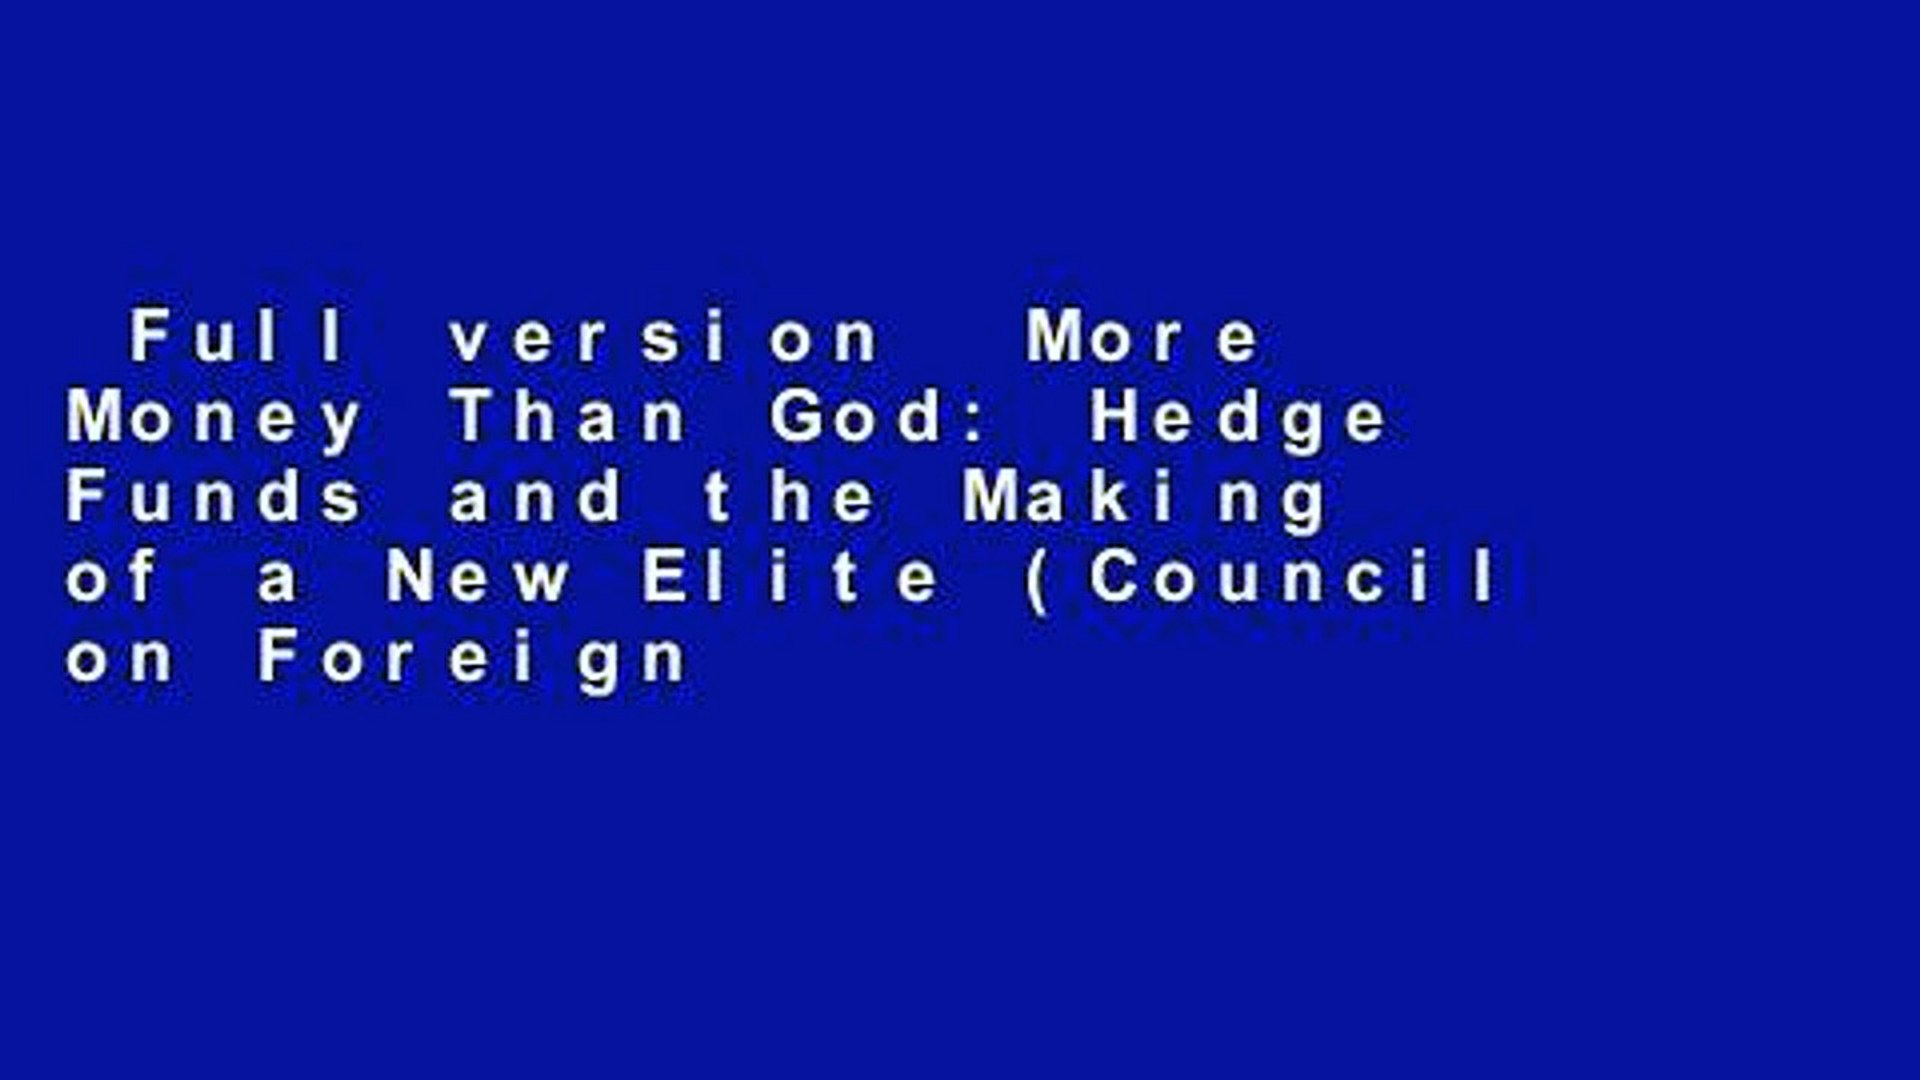 Full version More Money Than God: Hedge Funds and the Making of a New Elite  (Council on Foreign